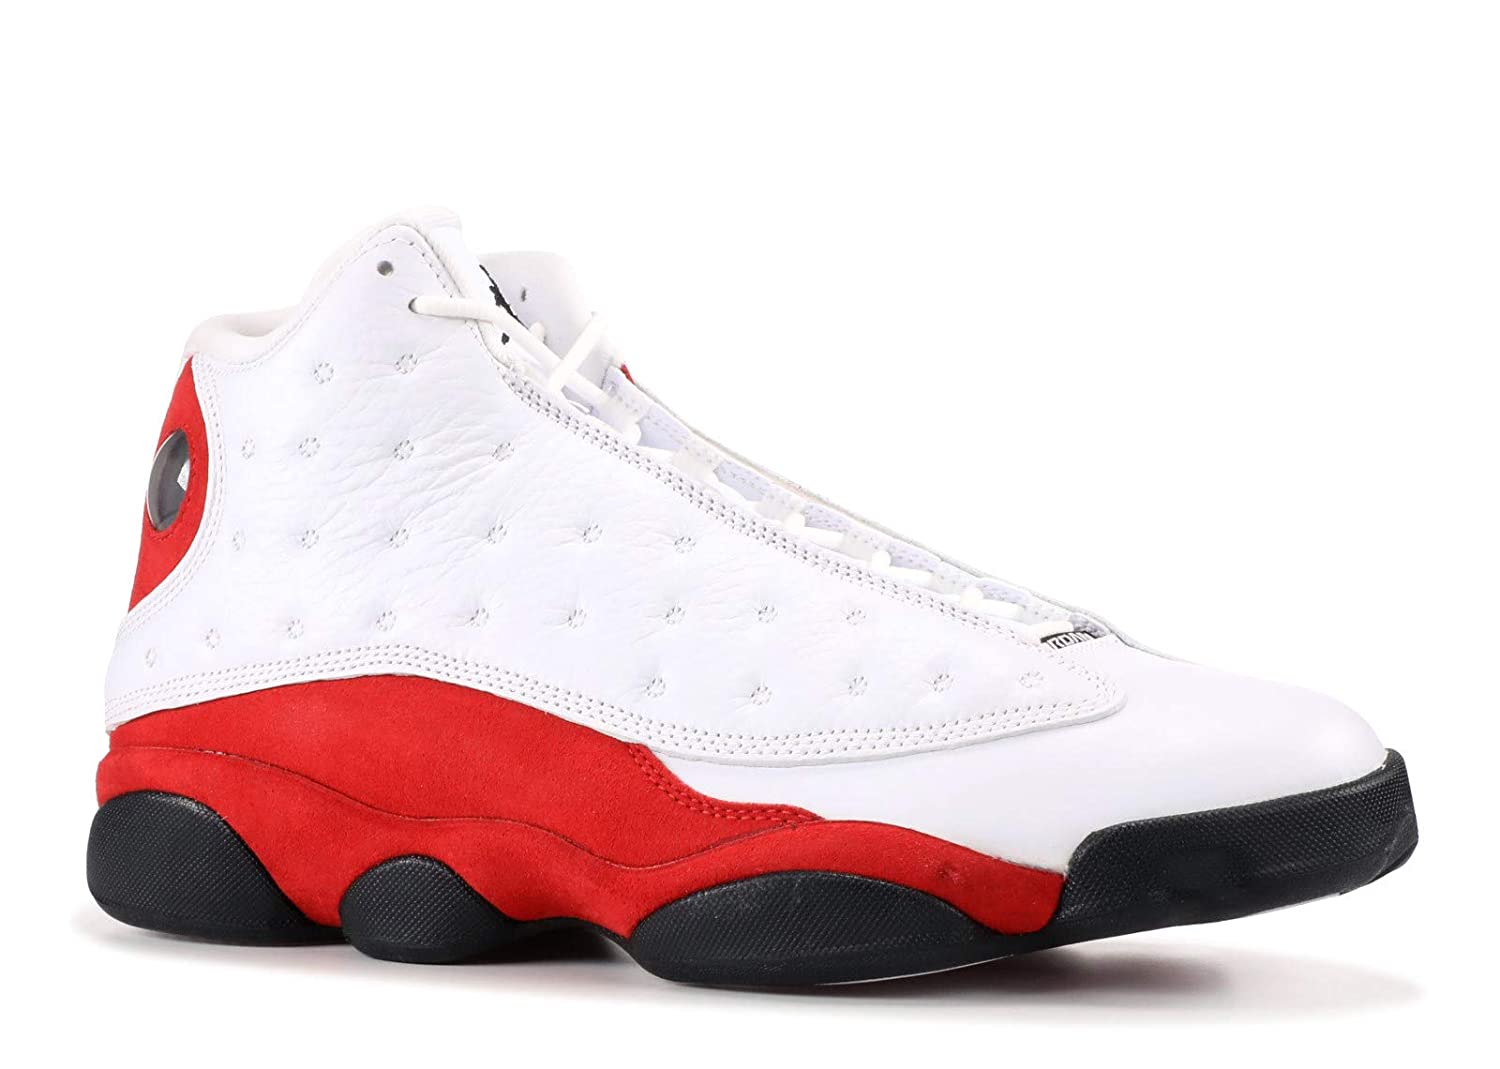 buy popular 646c6 a9f14 Amazon.com  AIR Jordan 13 Retro Chicago 2017 - 414571-122  Basketball